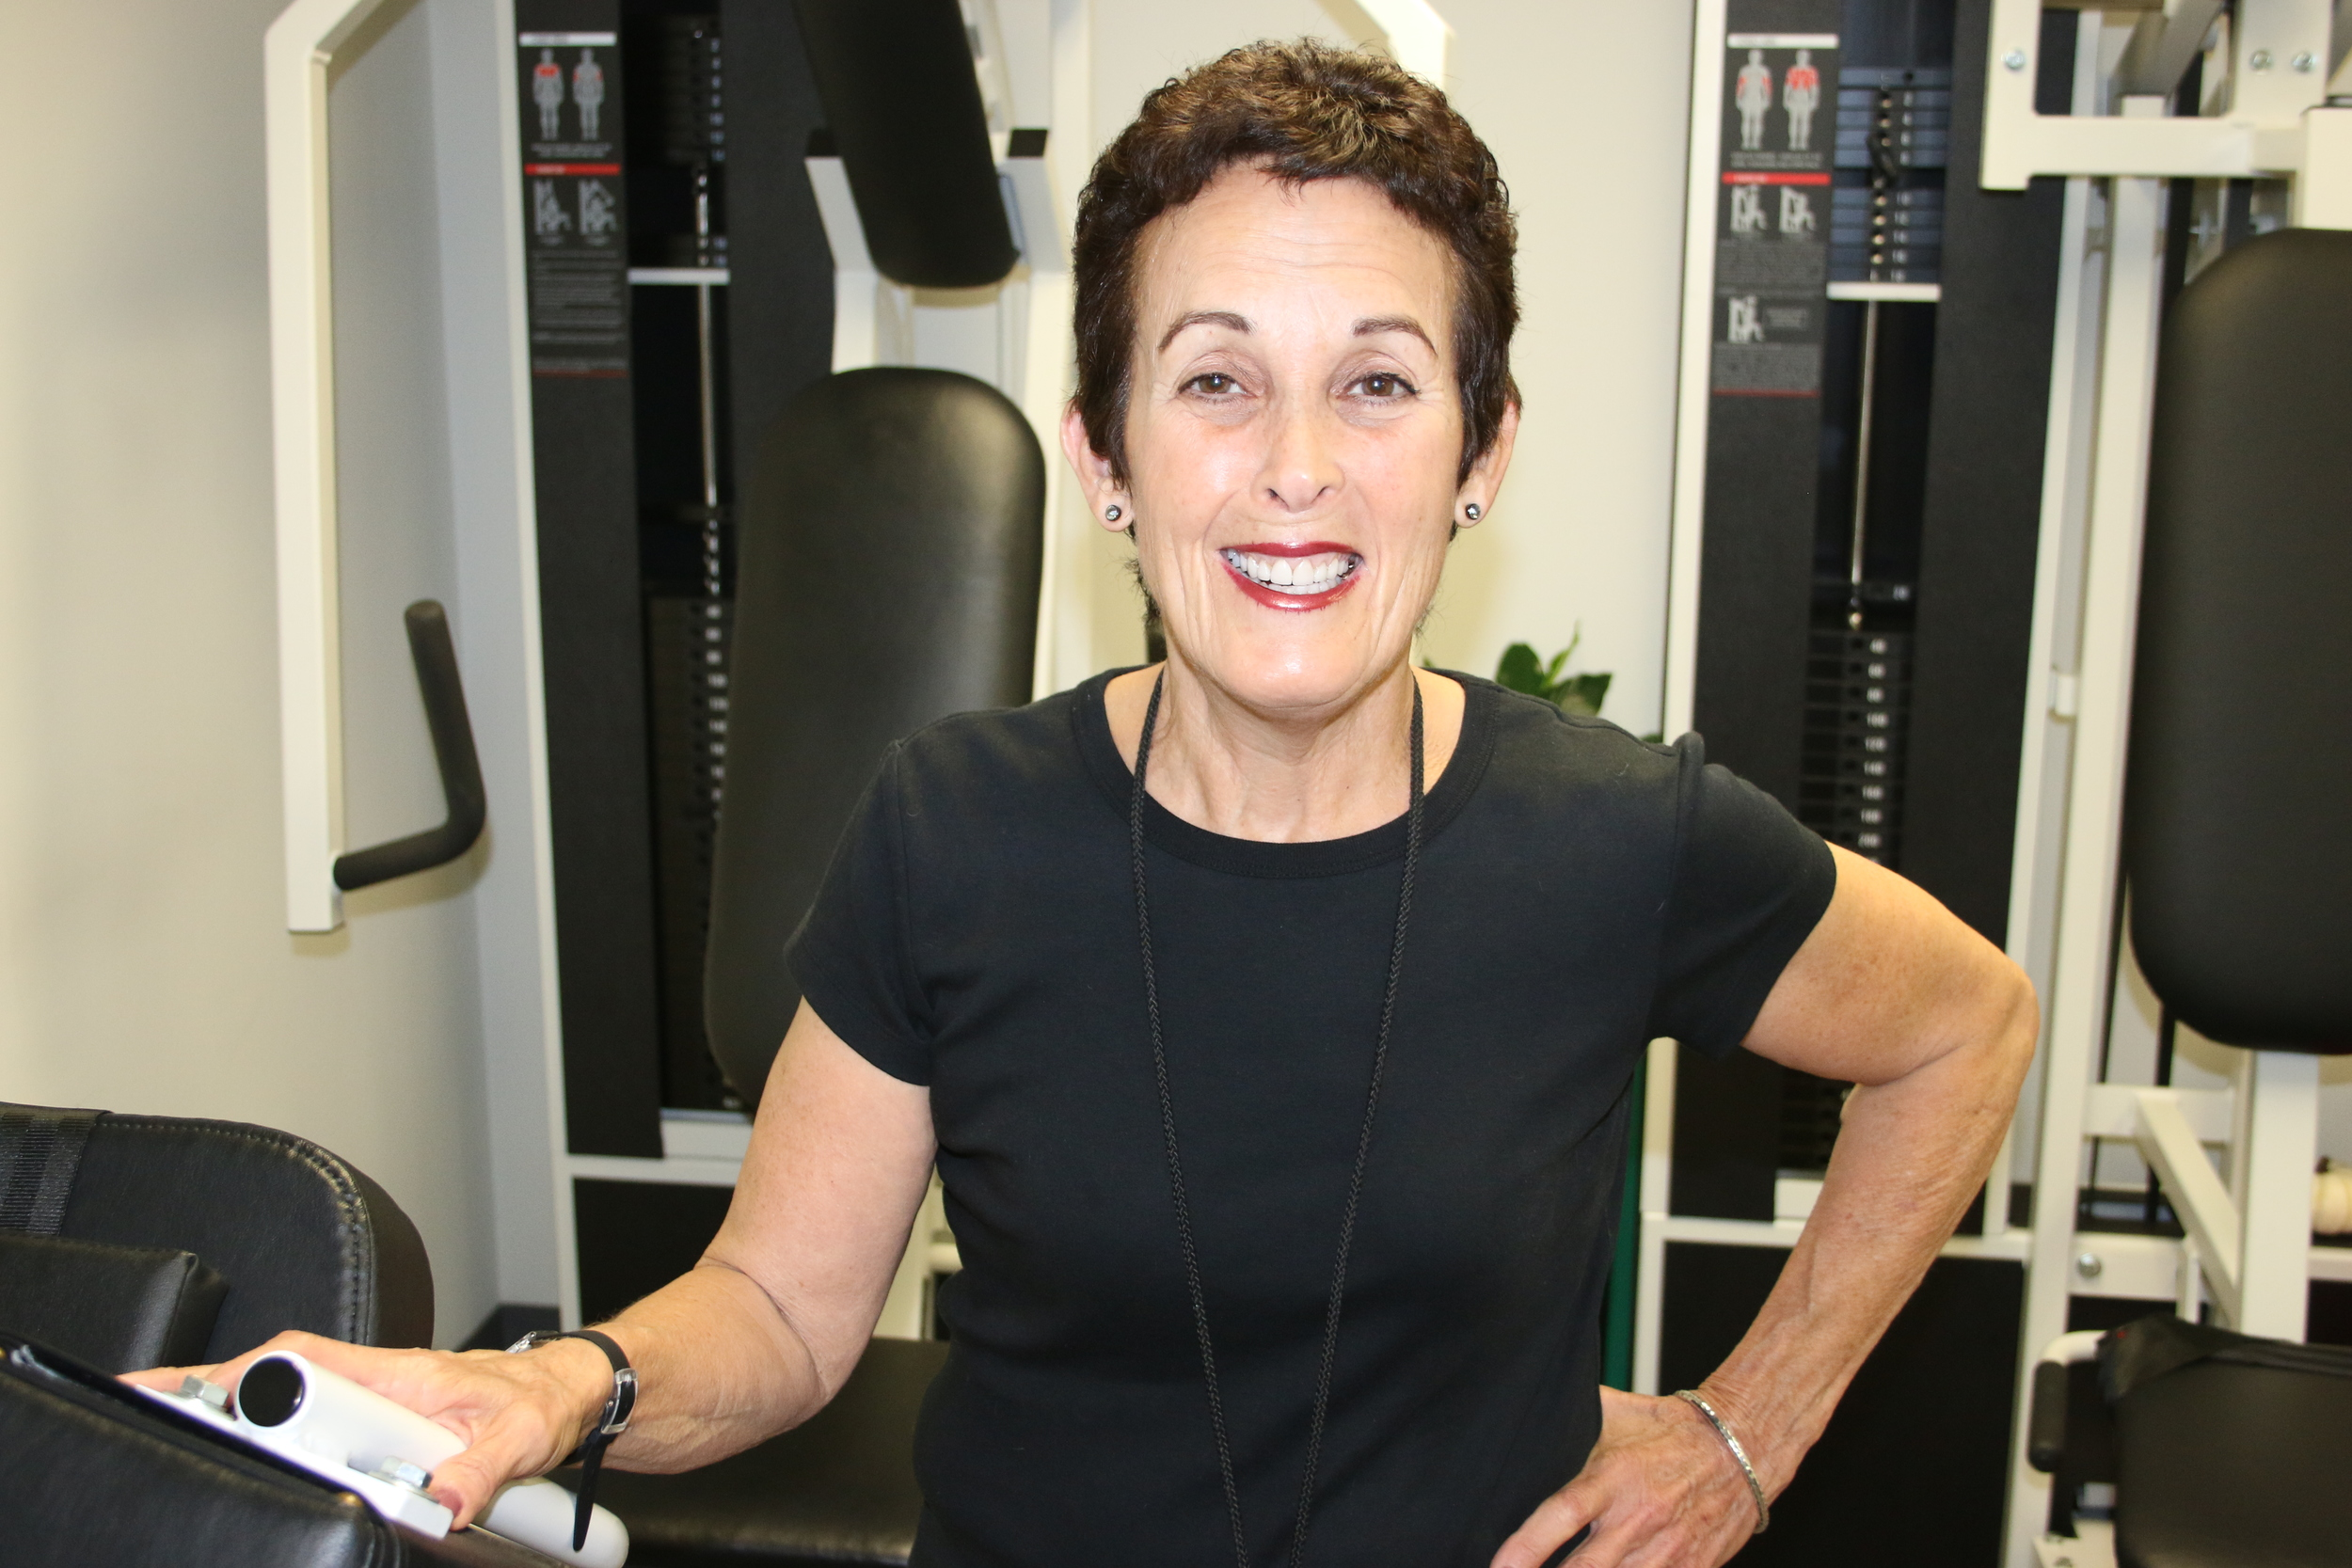 Linda, trainer who provides slow motion high intensity strength training in Encino, CA